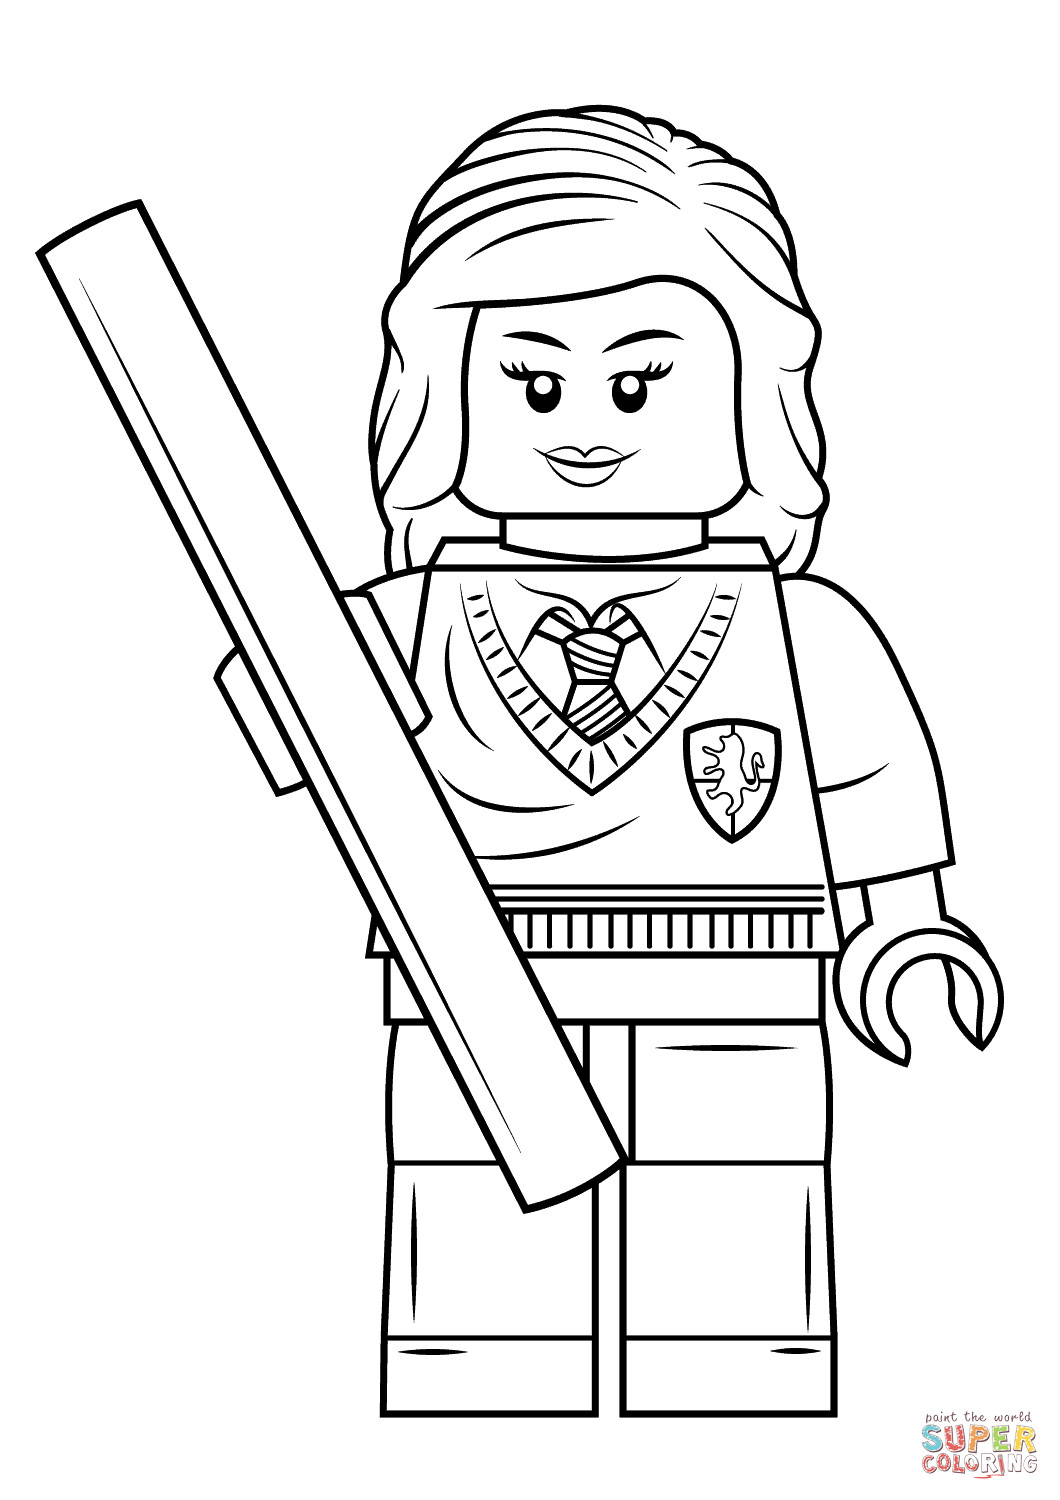 lego people coloring pages lego people coloring pages az coloring pages jeffersonclan people coloring lego pages